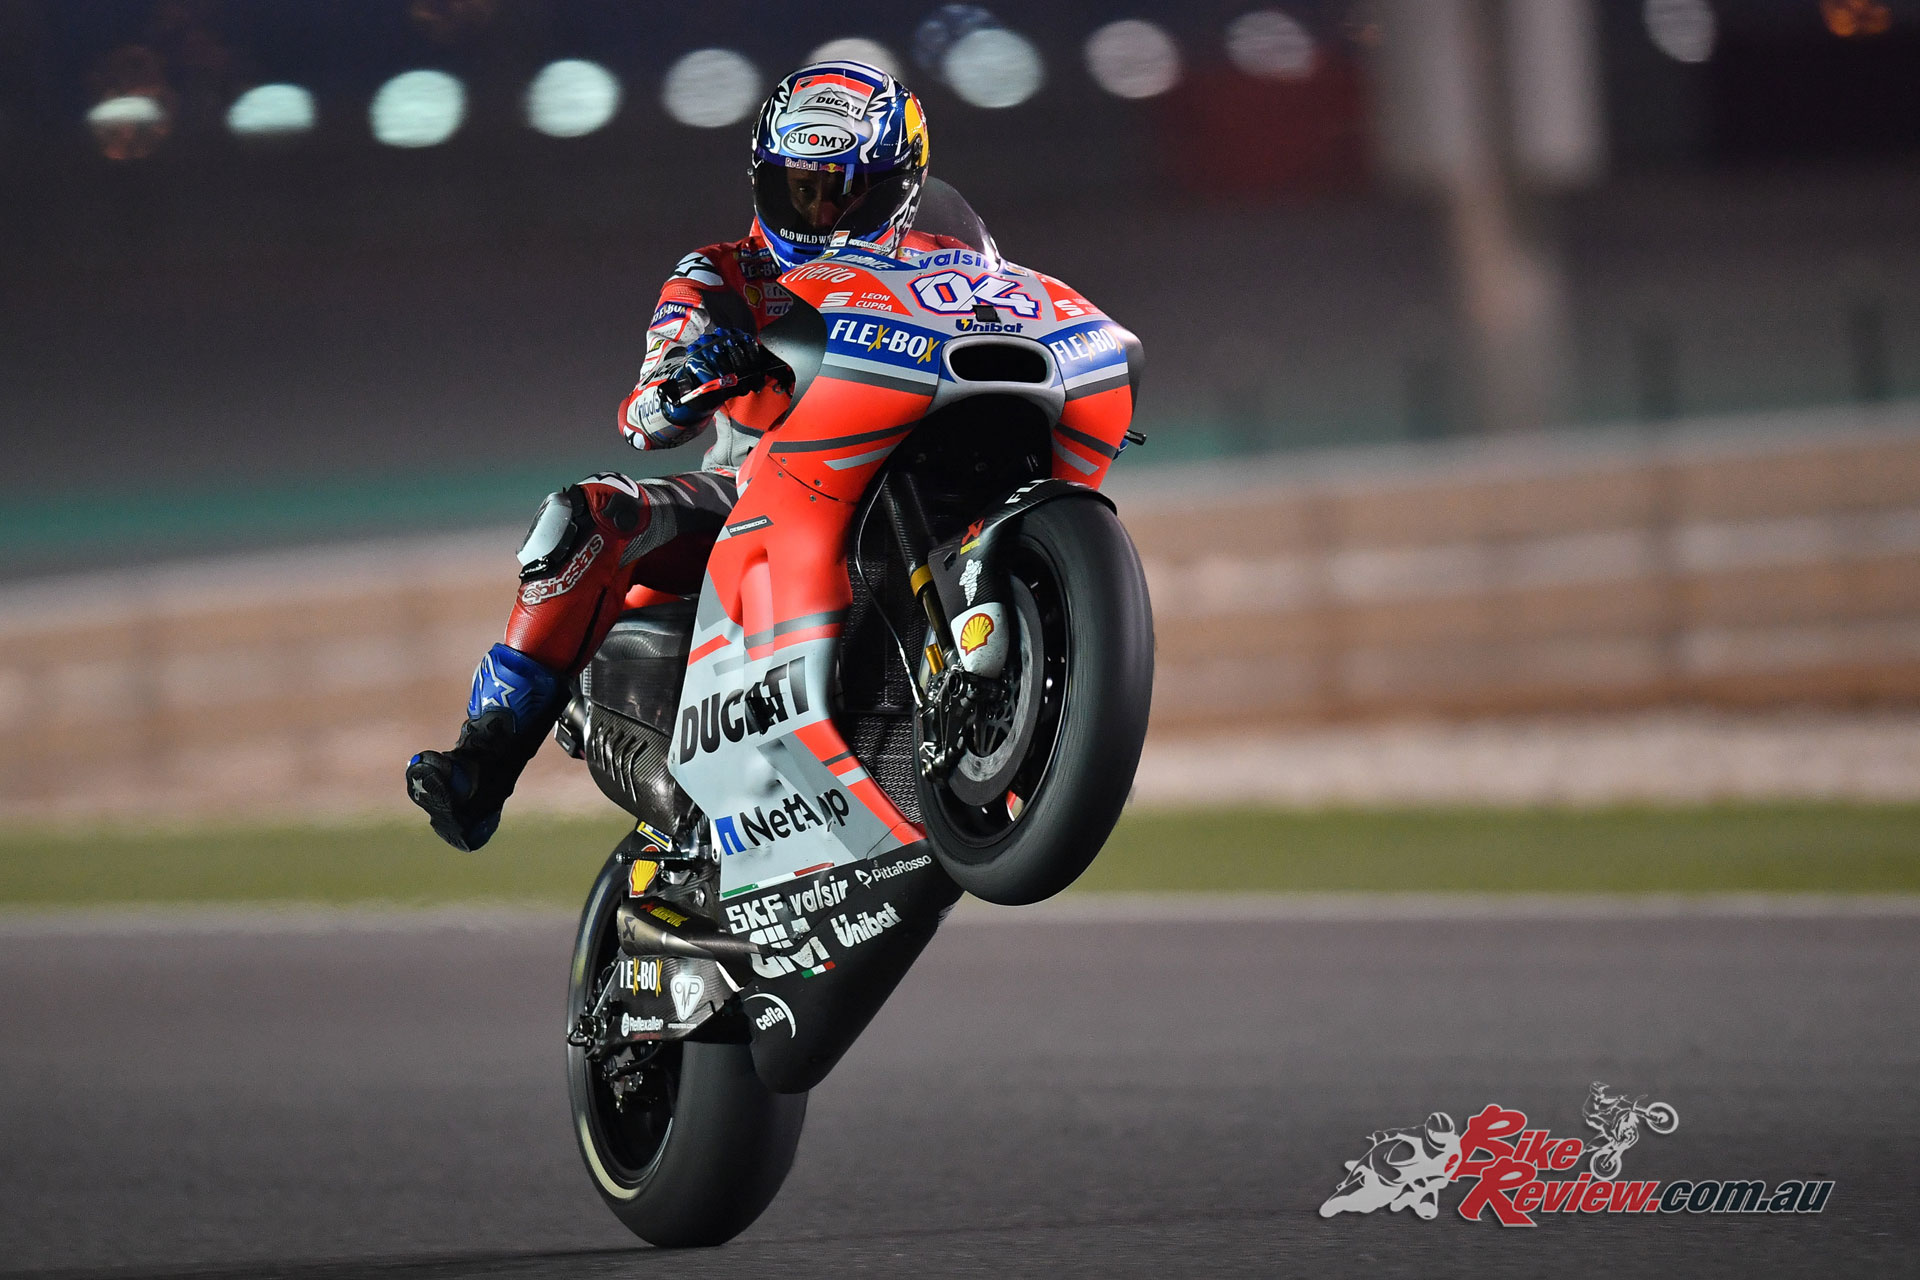 Battle commences in Qatar - MotoGP 2018 - Bike Review